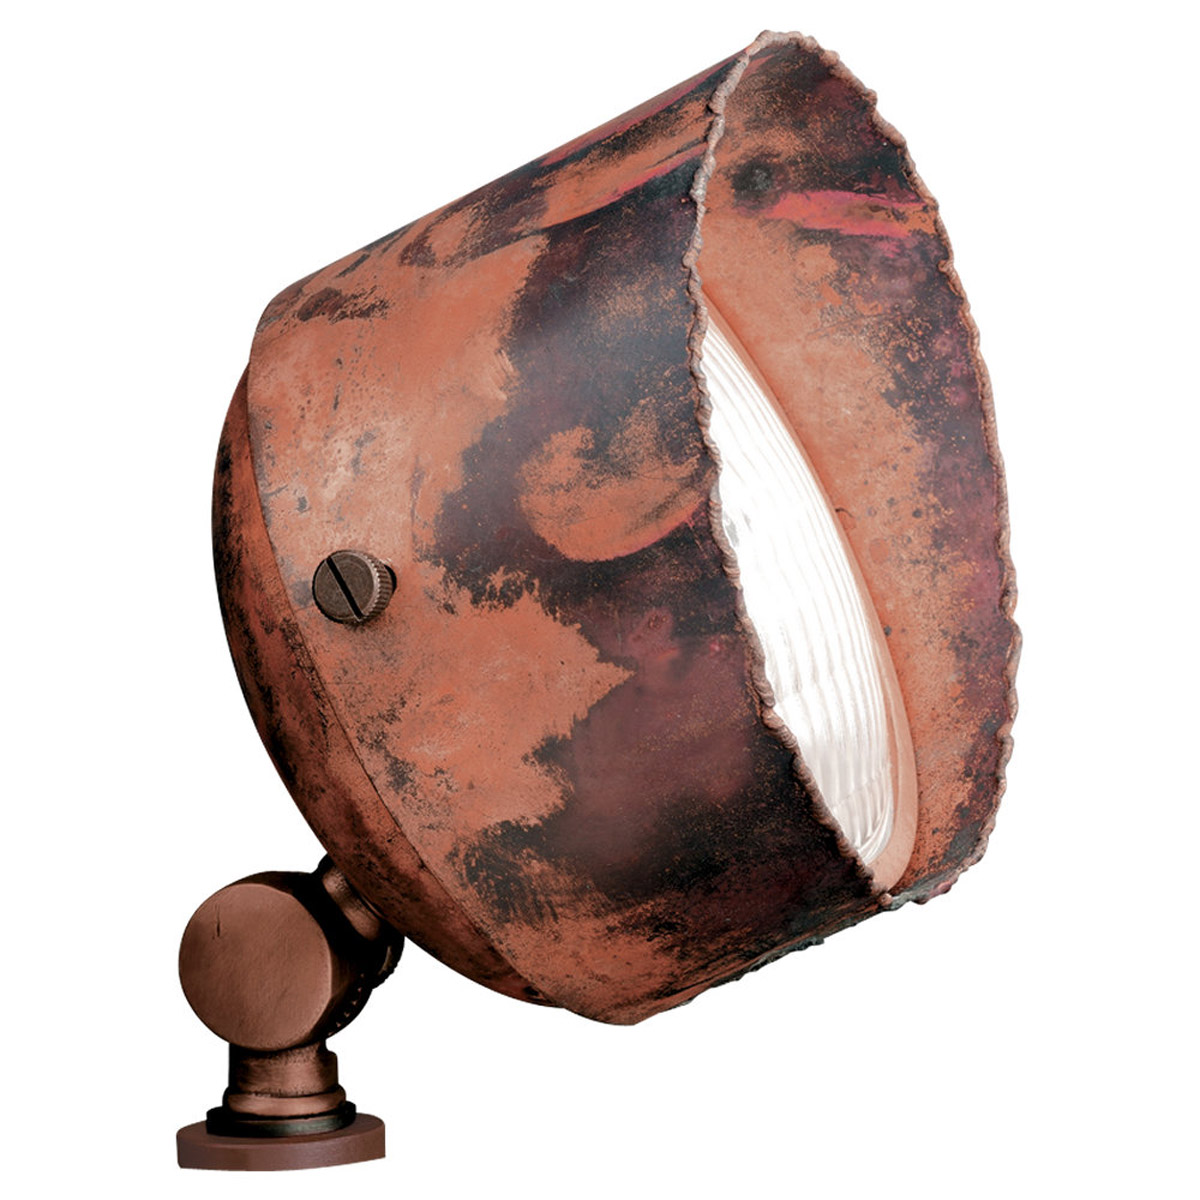 Sea Gull Lighting Signature 1 Light Landscape Accent in Torched Copper 92062-836